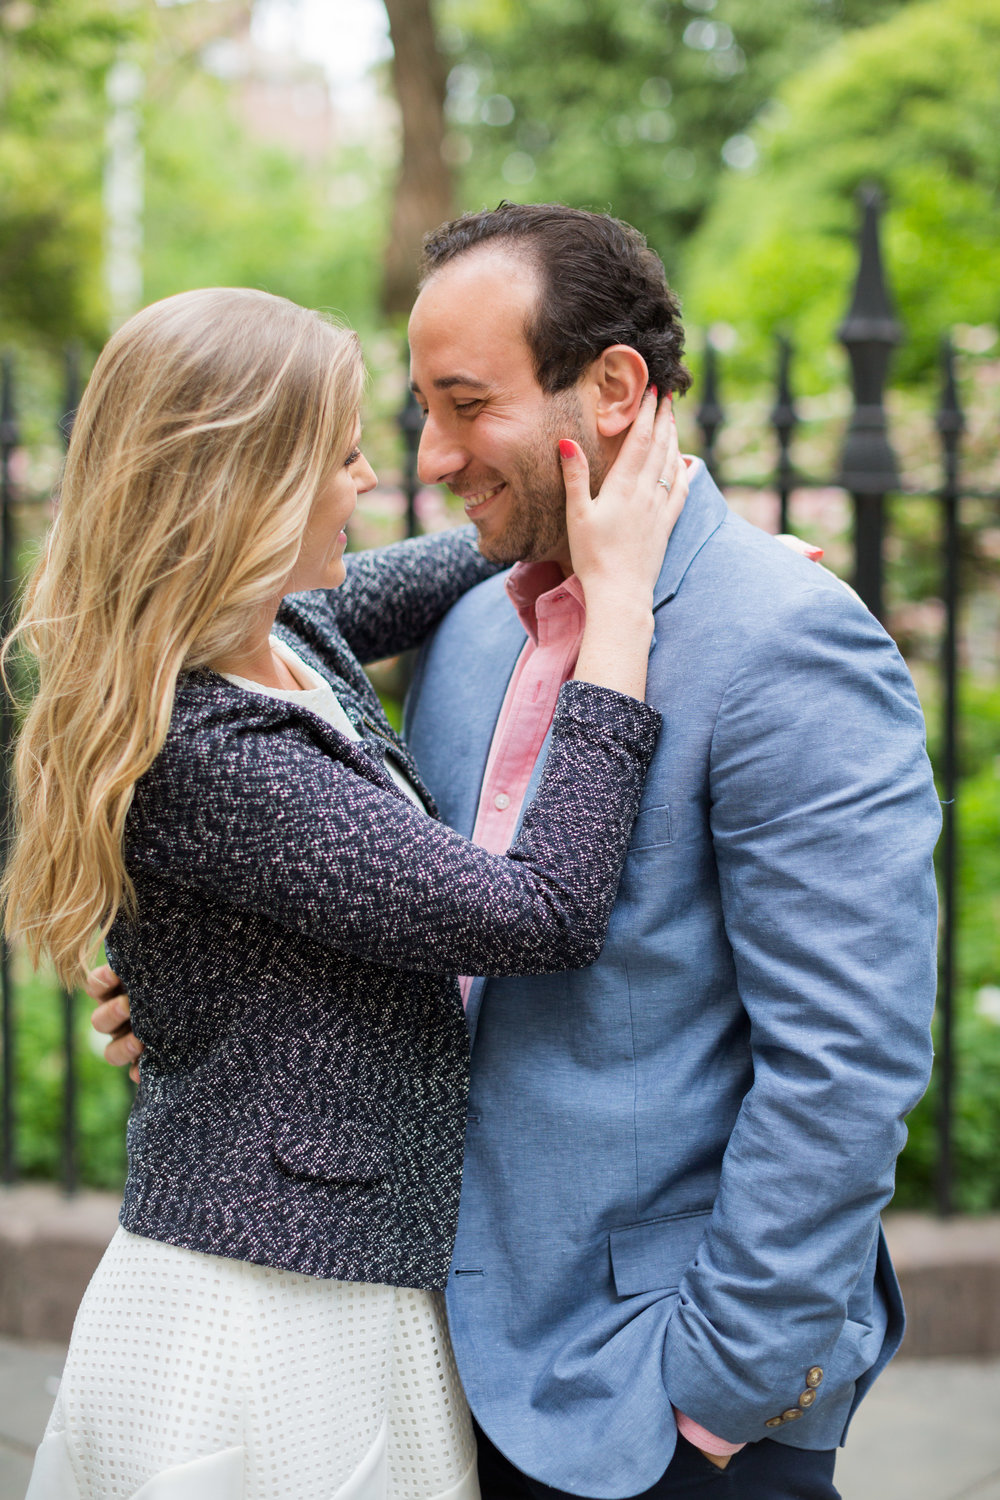 Melissa Kruse Photography - Courtney & JP Gramercy NYC Engagement Photos-165.jpg